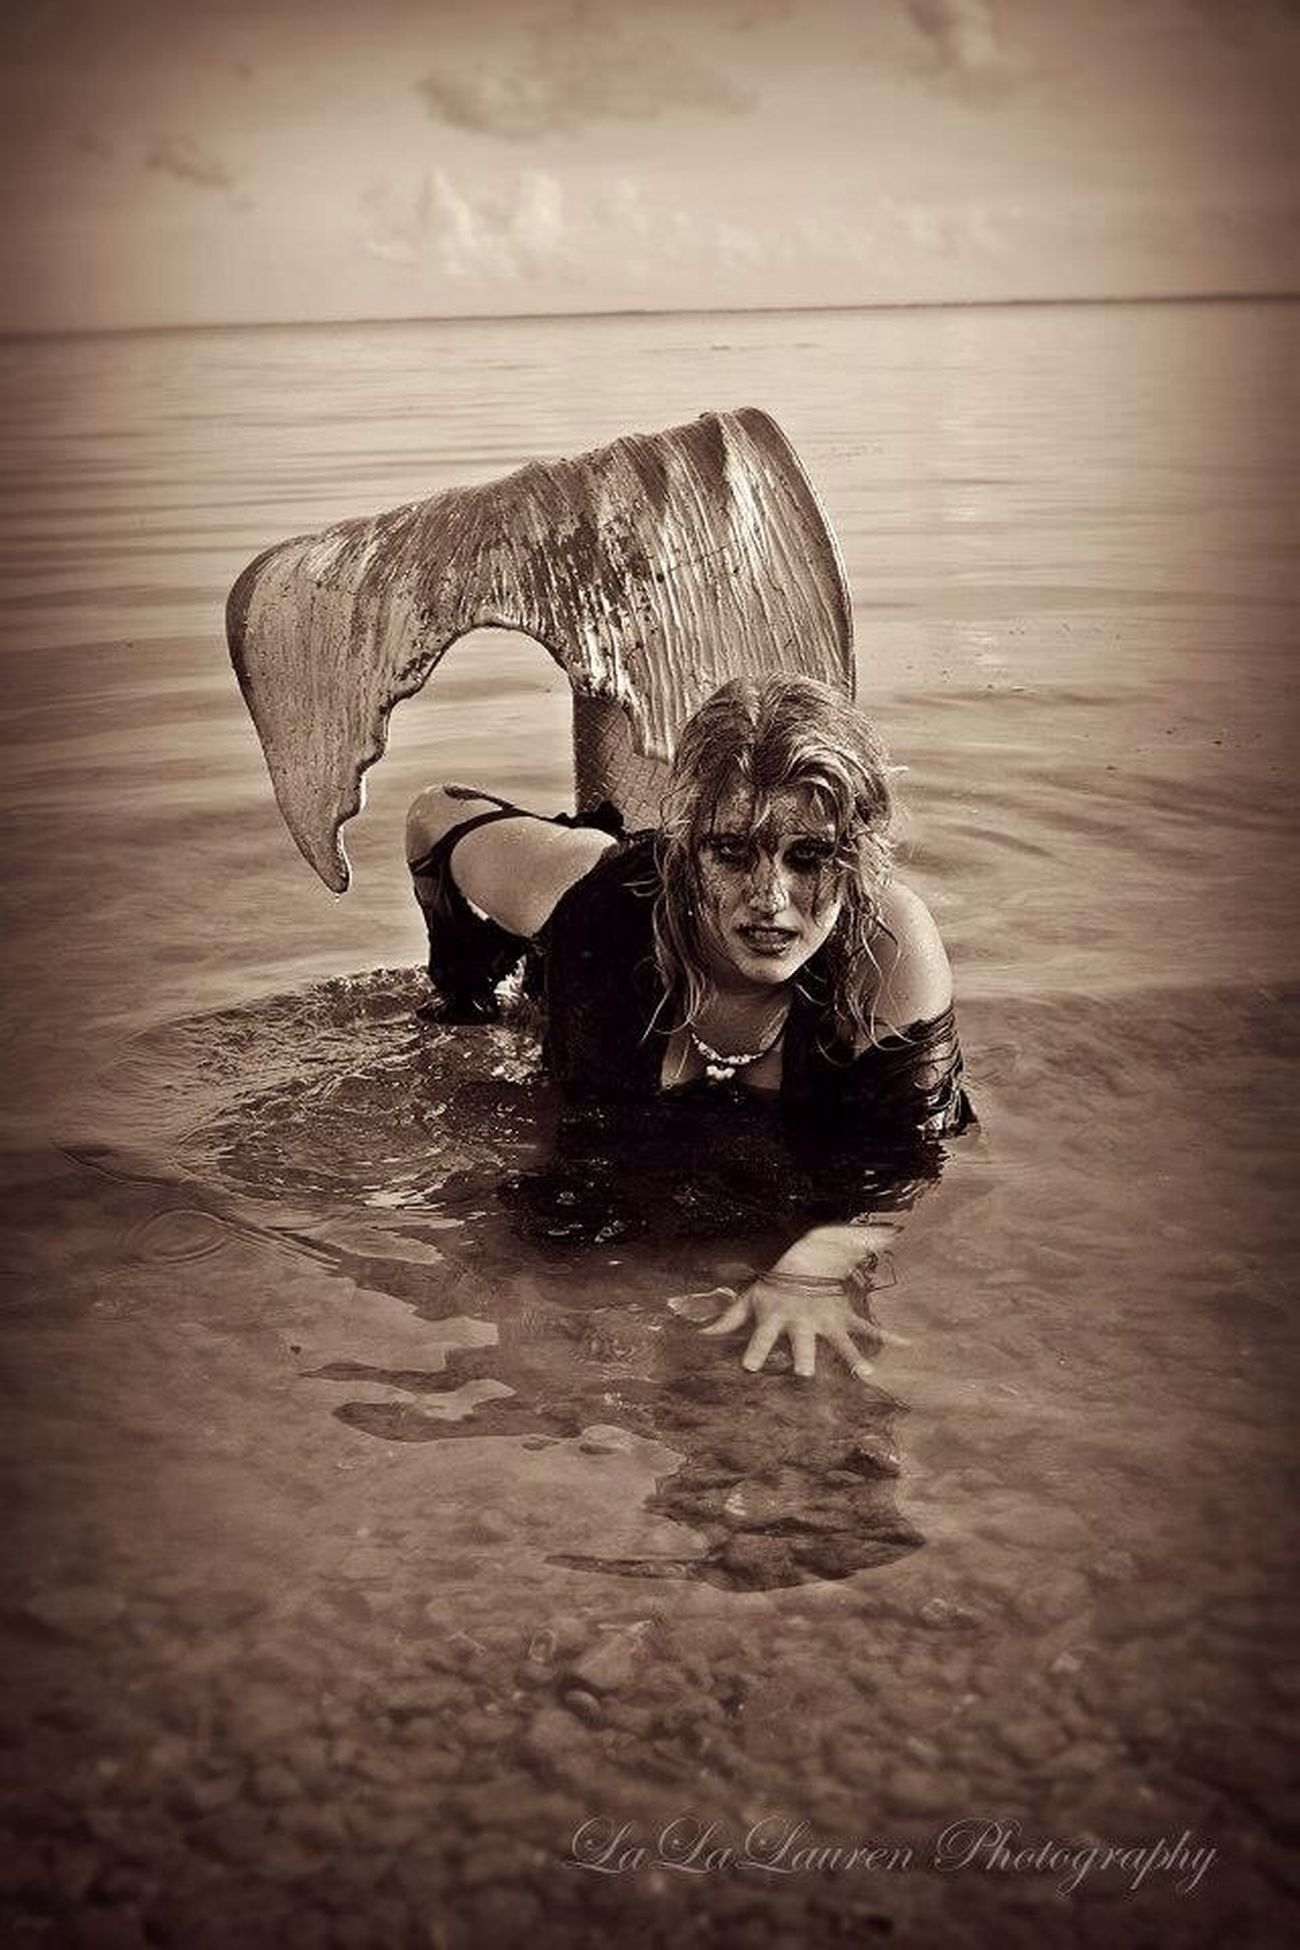 Creep Mermaid Shoot